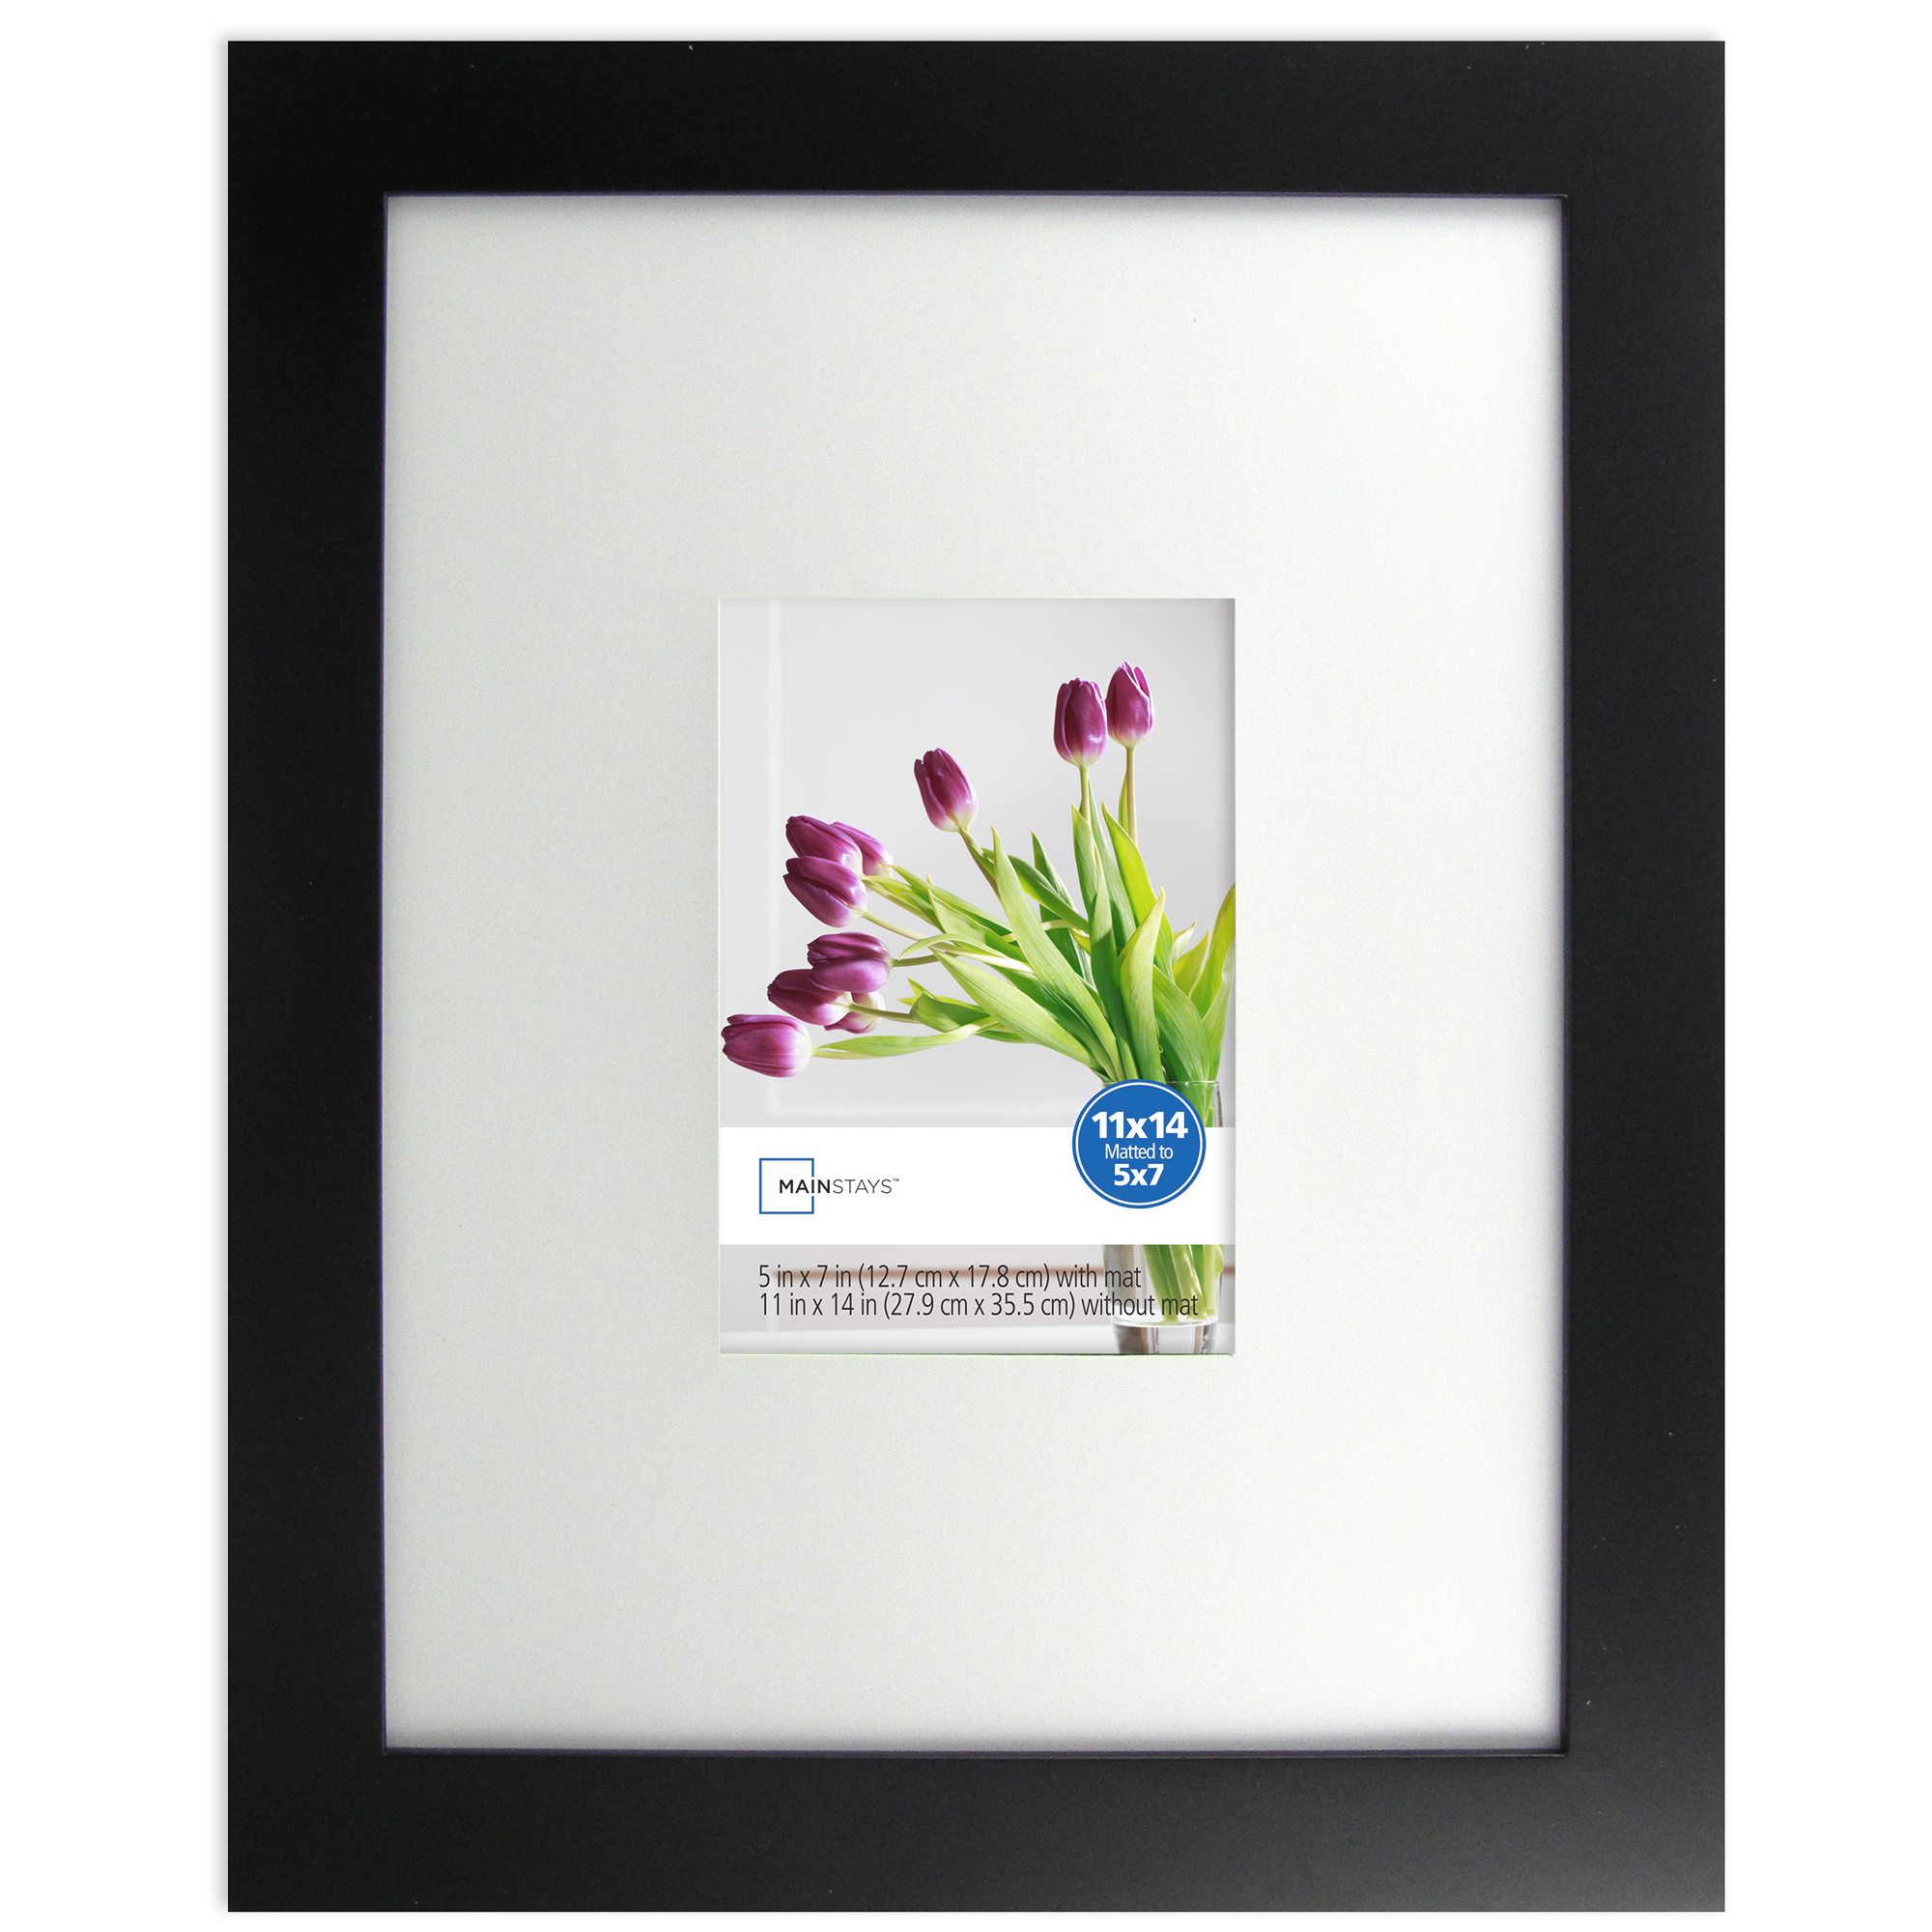 Mainstays 5x7 to 11x14 Wide Picture Frame, Black by Uniek